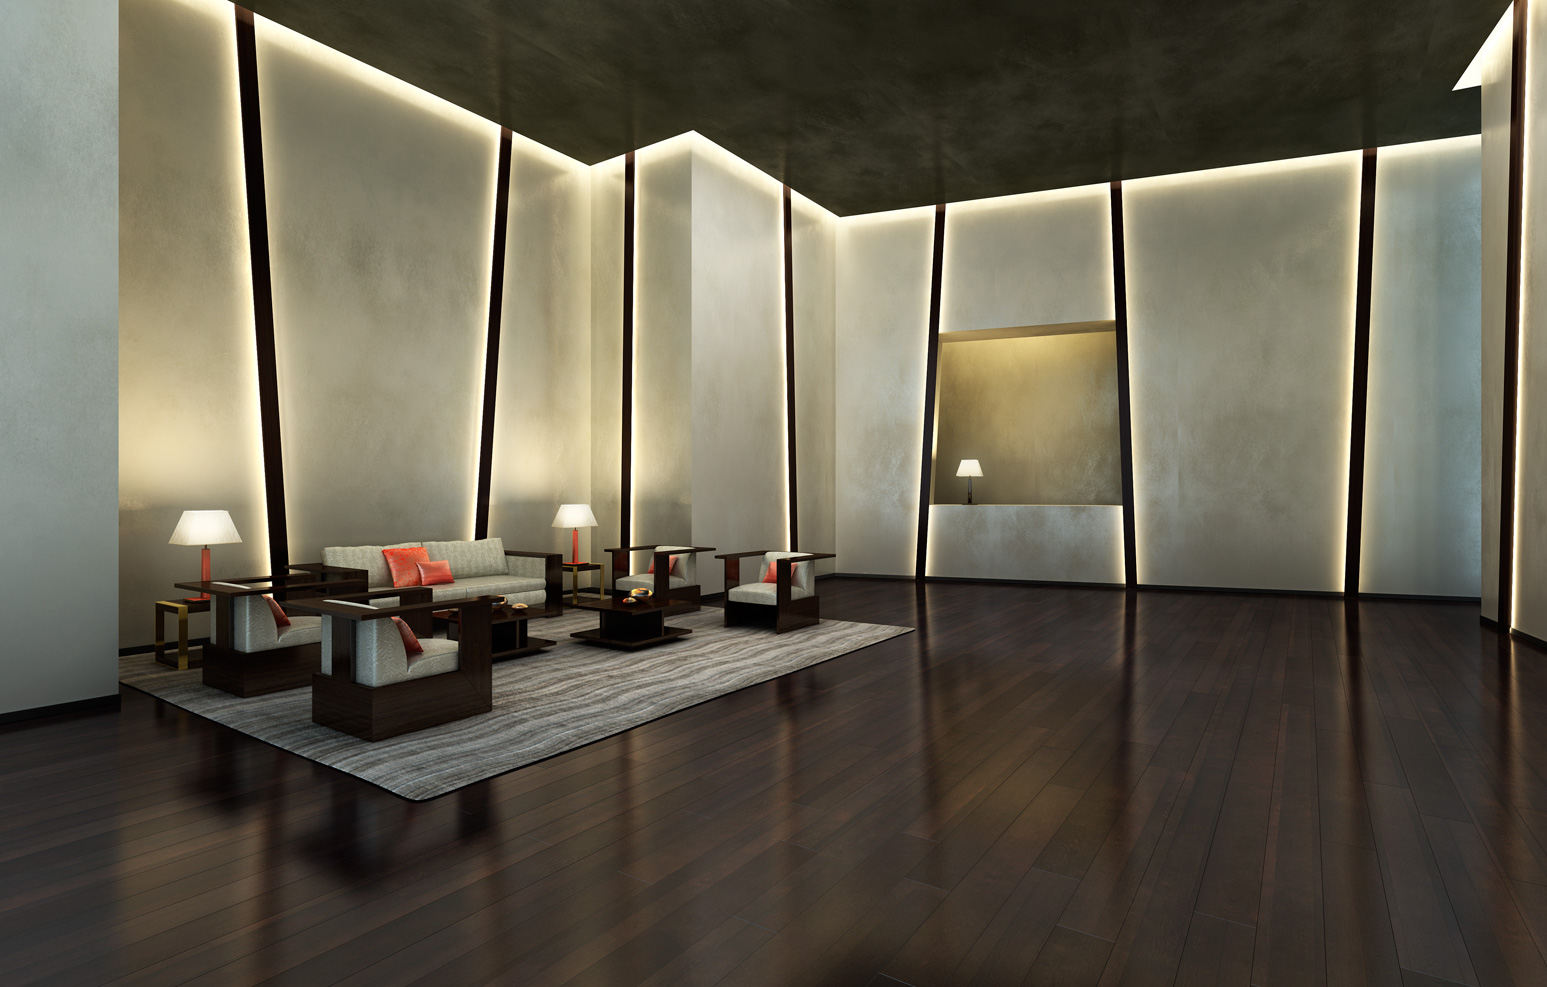 armani casa to design interior of century spire tower in interior design service armani casa